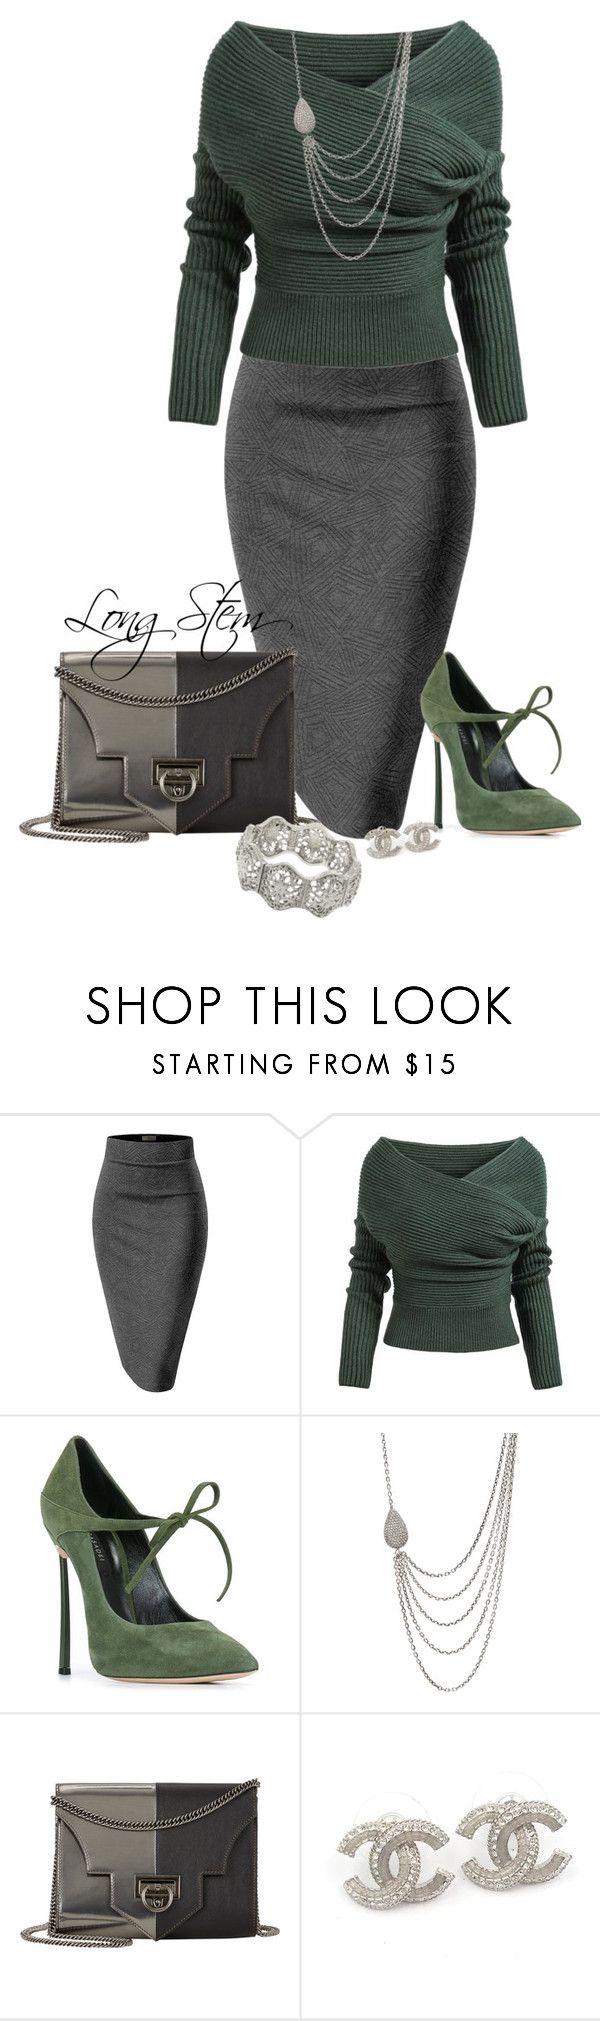 """2/18/17"" by longstem ❤ liked on Polyvore featuring Whit, Casadei, Irit Design, Reece Hudson, Chanel and 1928"